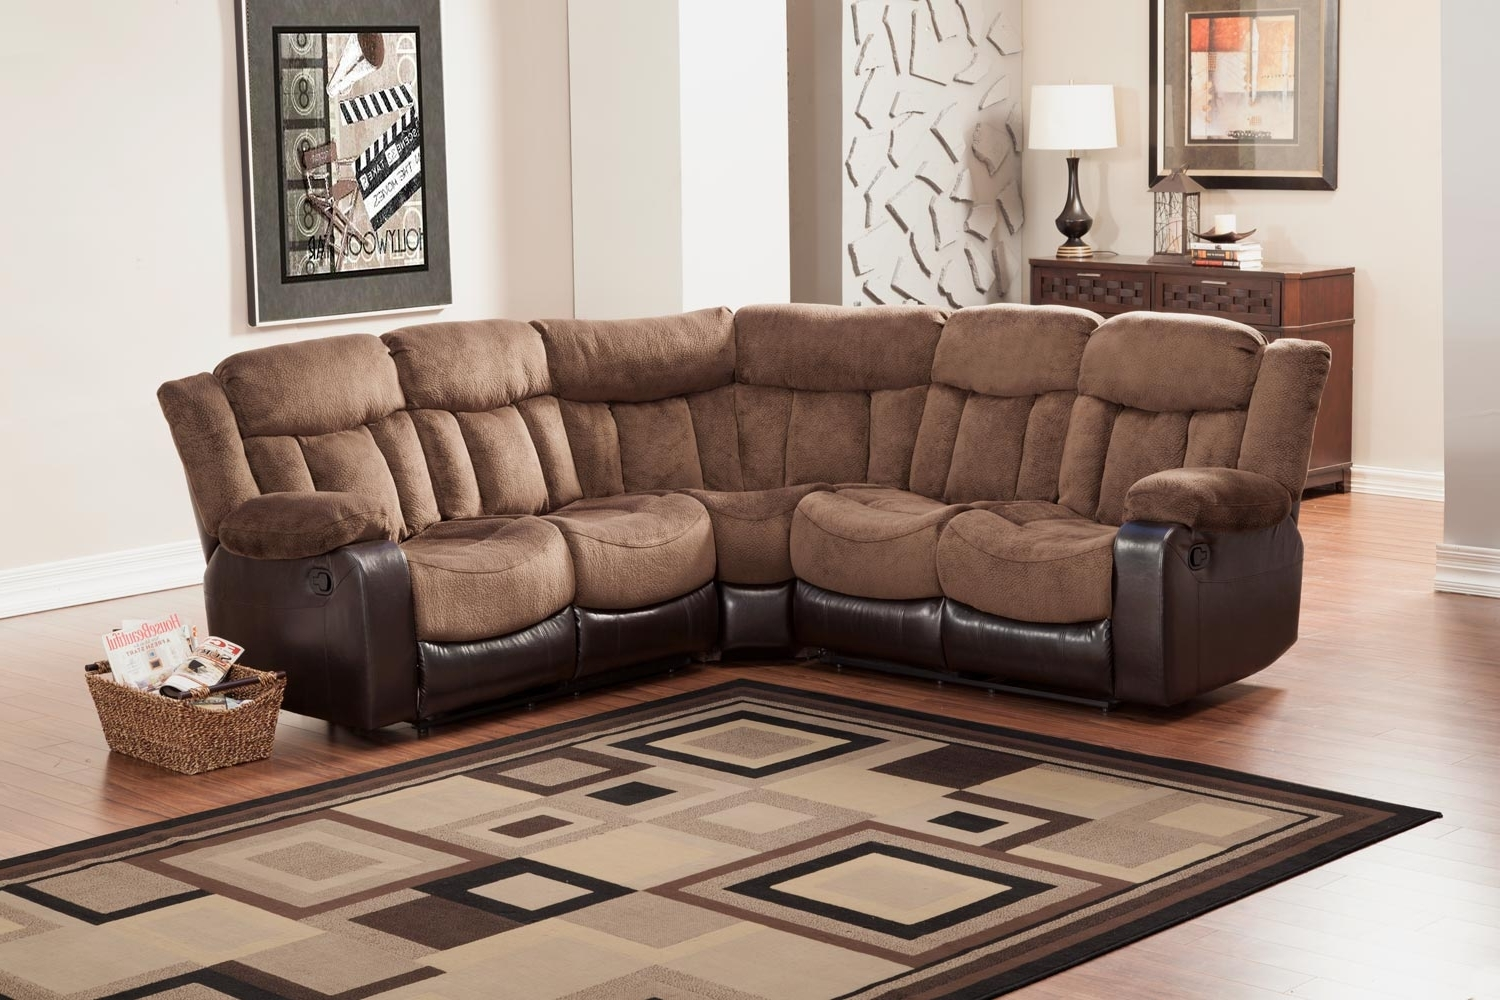 Homelegance Vera Reclining Sectional Sofa – Chocolate – Textured For Trendy Plush Sectional Sofas (View 6 of 15)